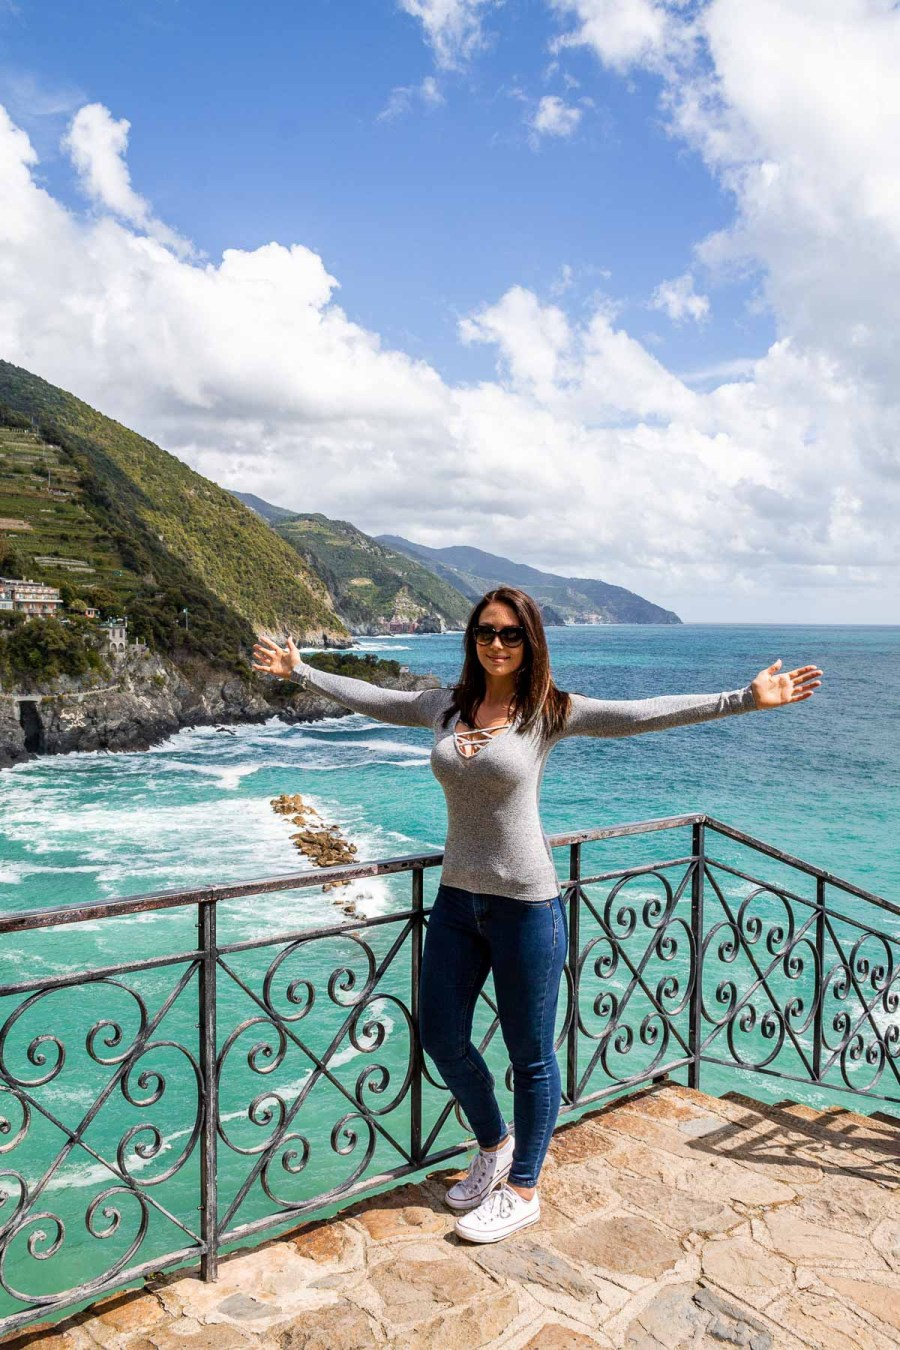 Panoramic sea view with girl in the middle at Monterosso al Mare in Cinque Terre, Italy